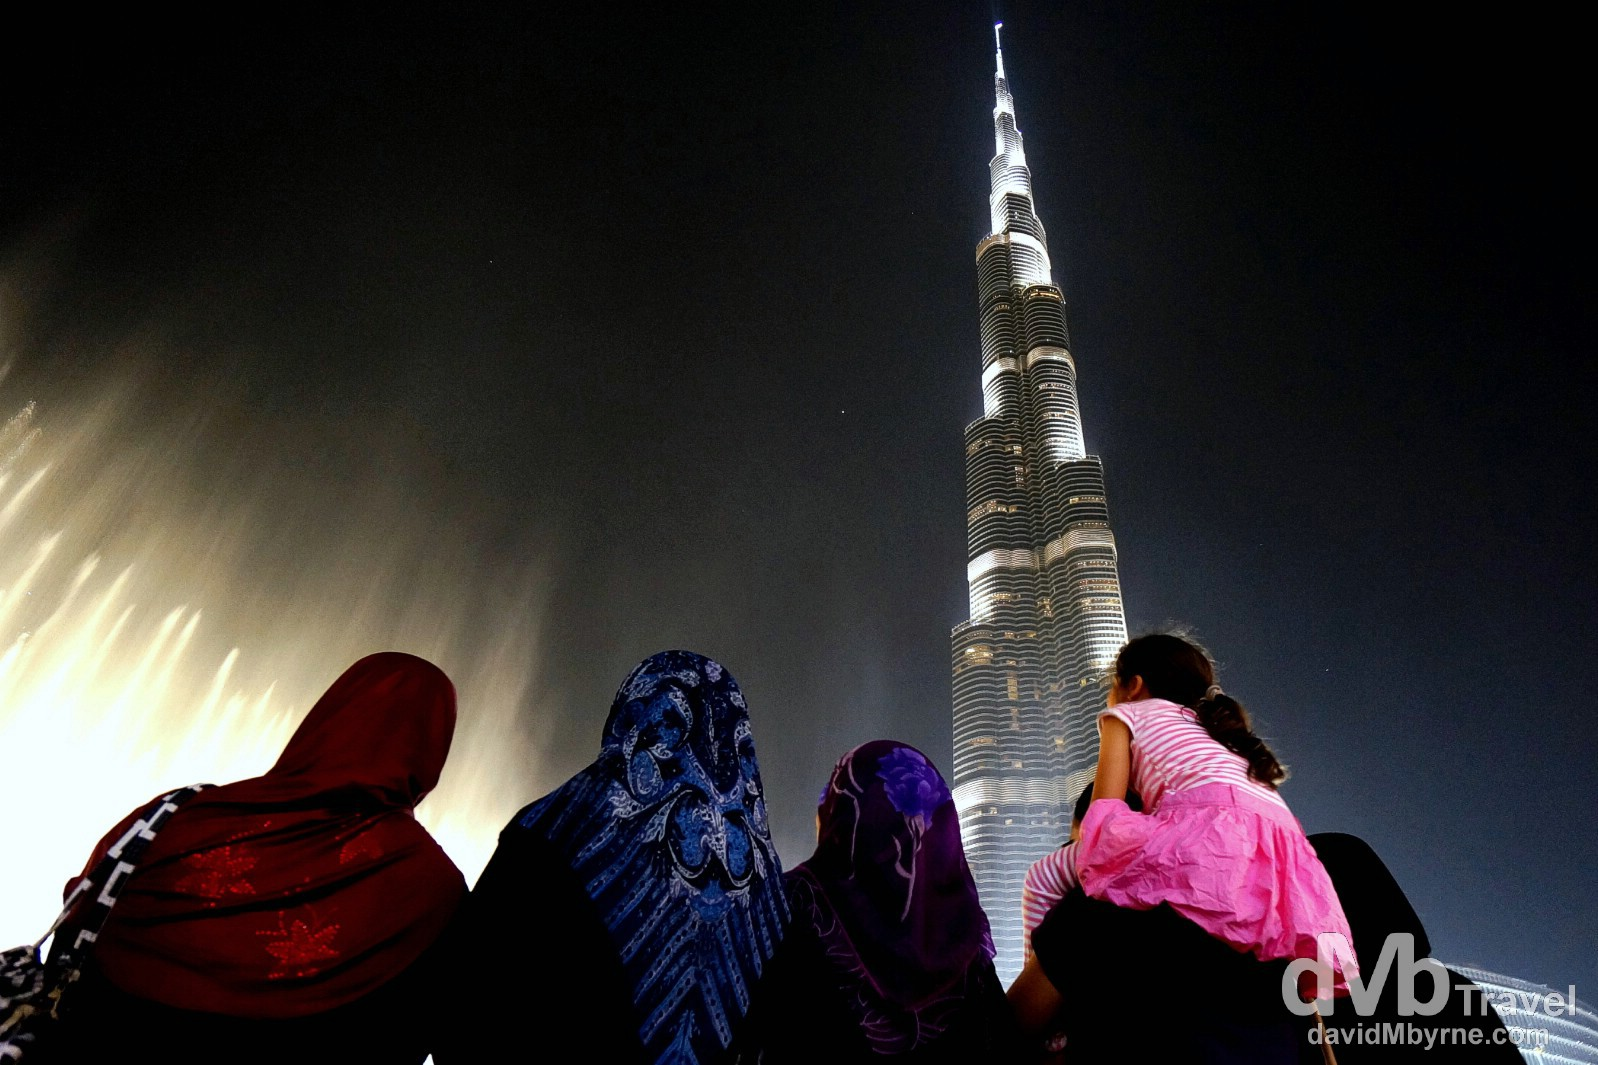 Enjoying the Dancing Fountain Show at the foot of the Burj Khalifa in Downtown Dubai, UAE. April 20th, 2014.